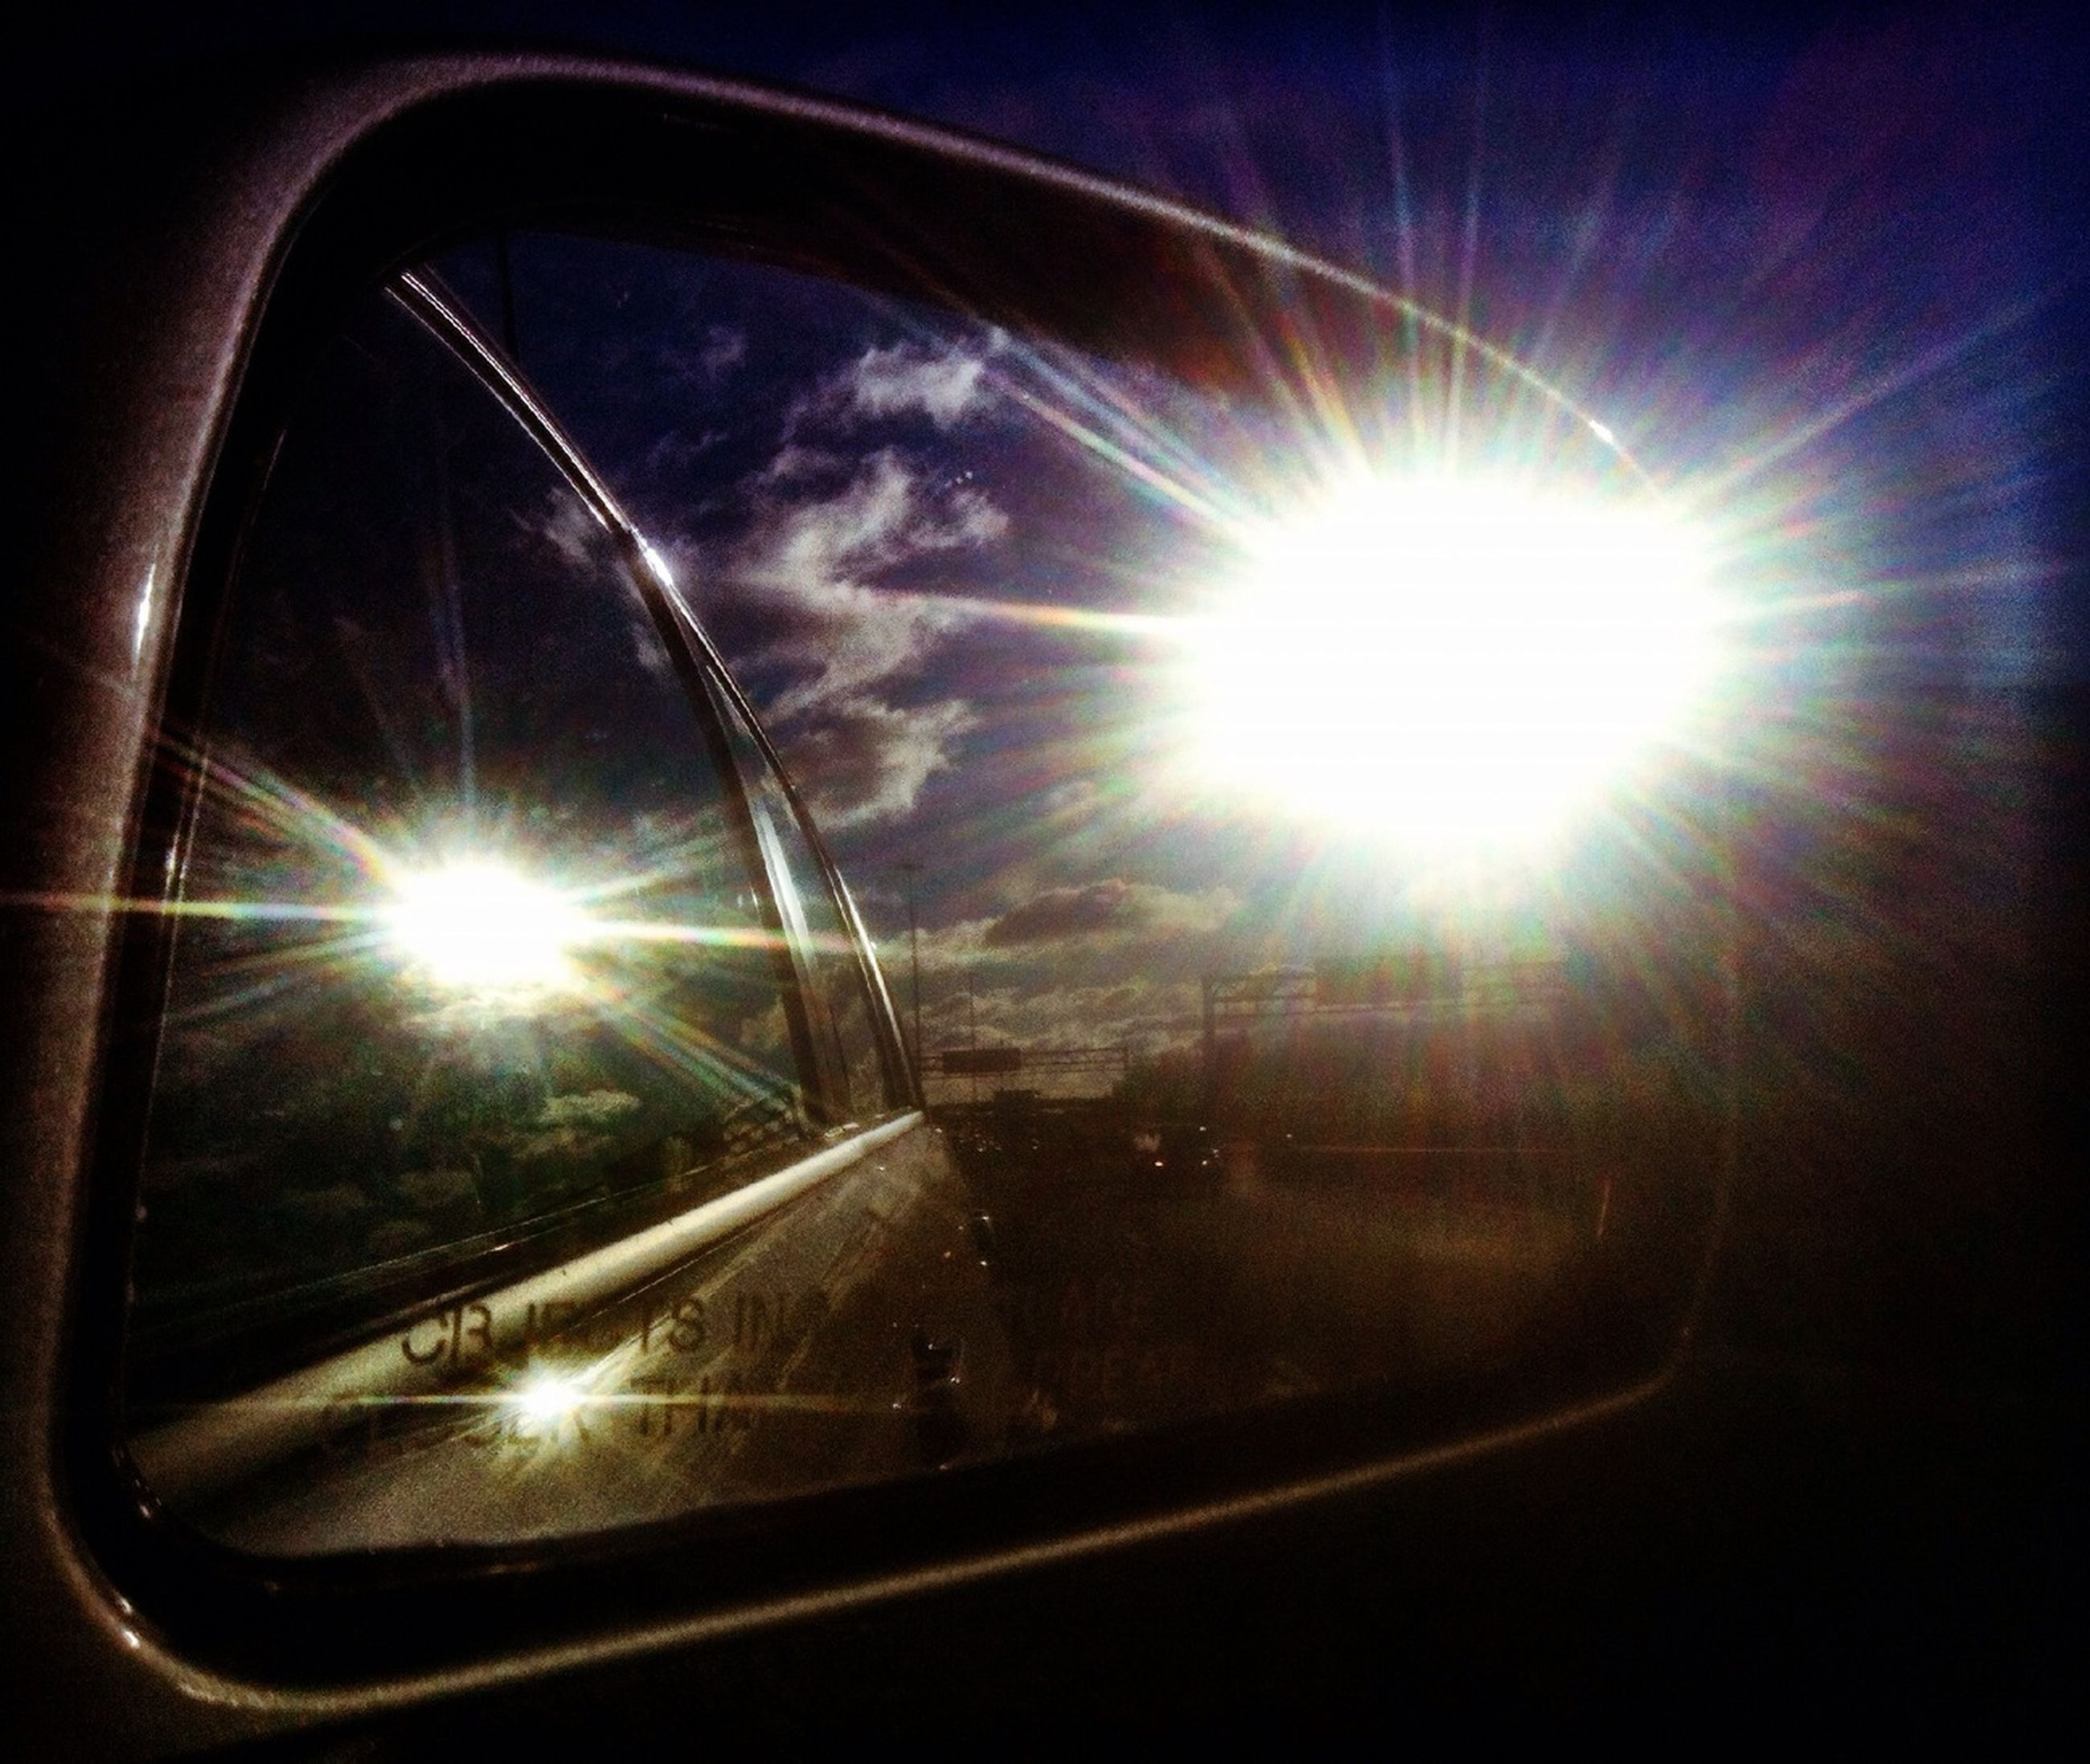 sun, transportation, lens flare, sunbeam, mode of transport, glass - material, land vehicle, car, sunlight, indoors, window, transparent, low angle view, sky, vehicle interior, bright, travel, no people, shiny, reflection